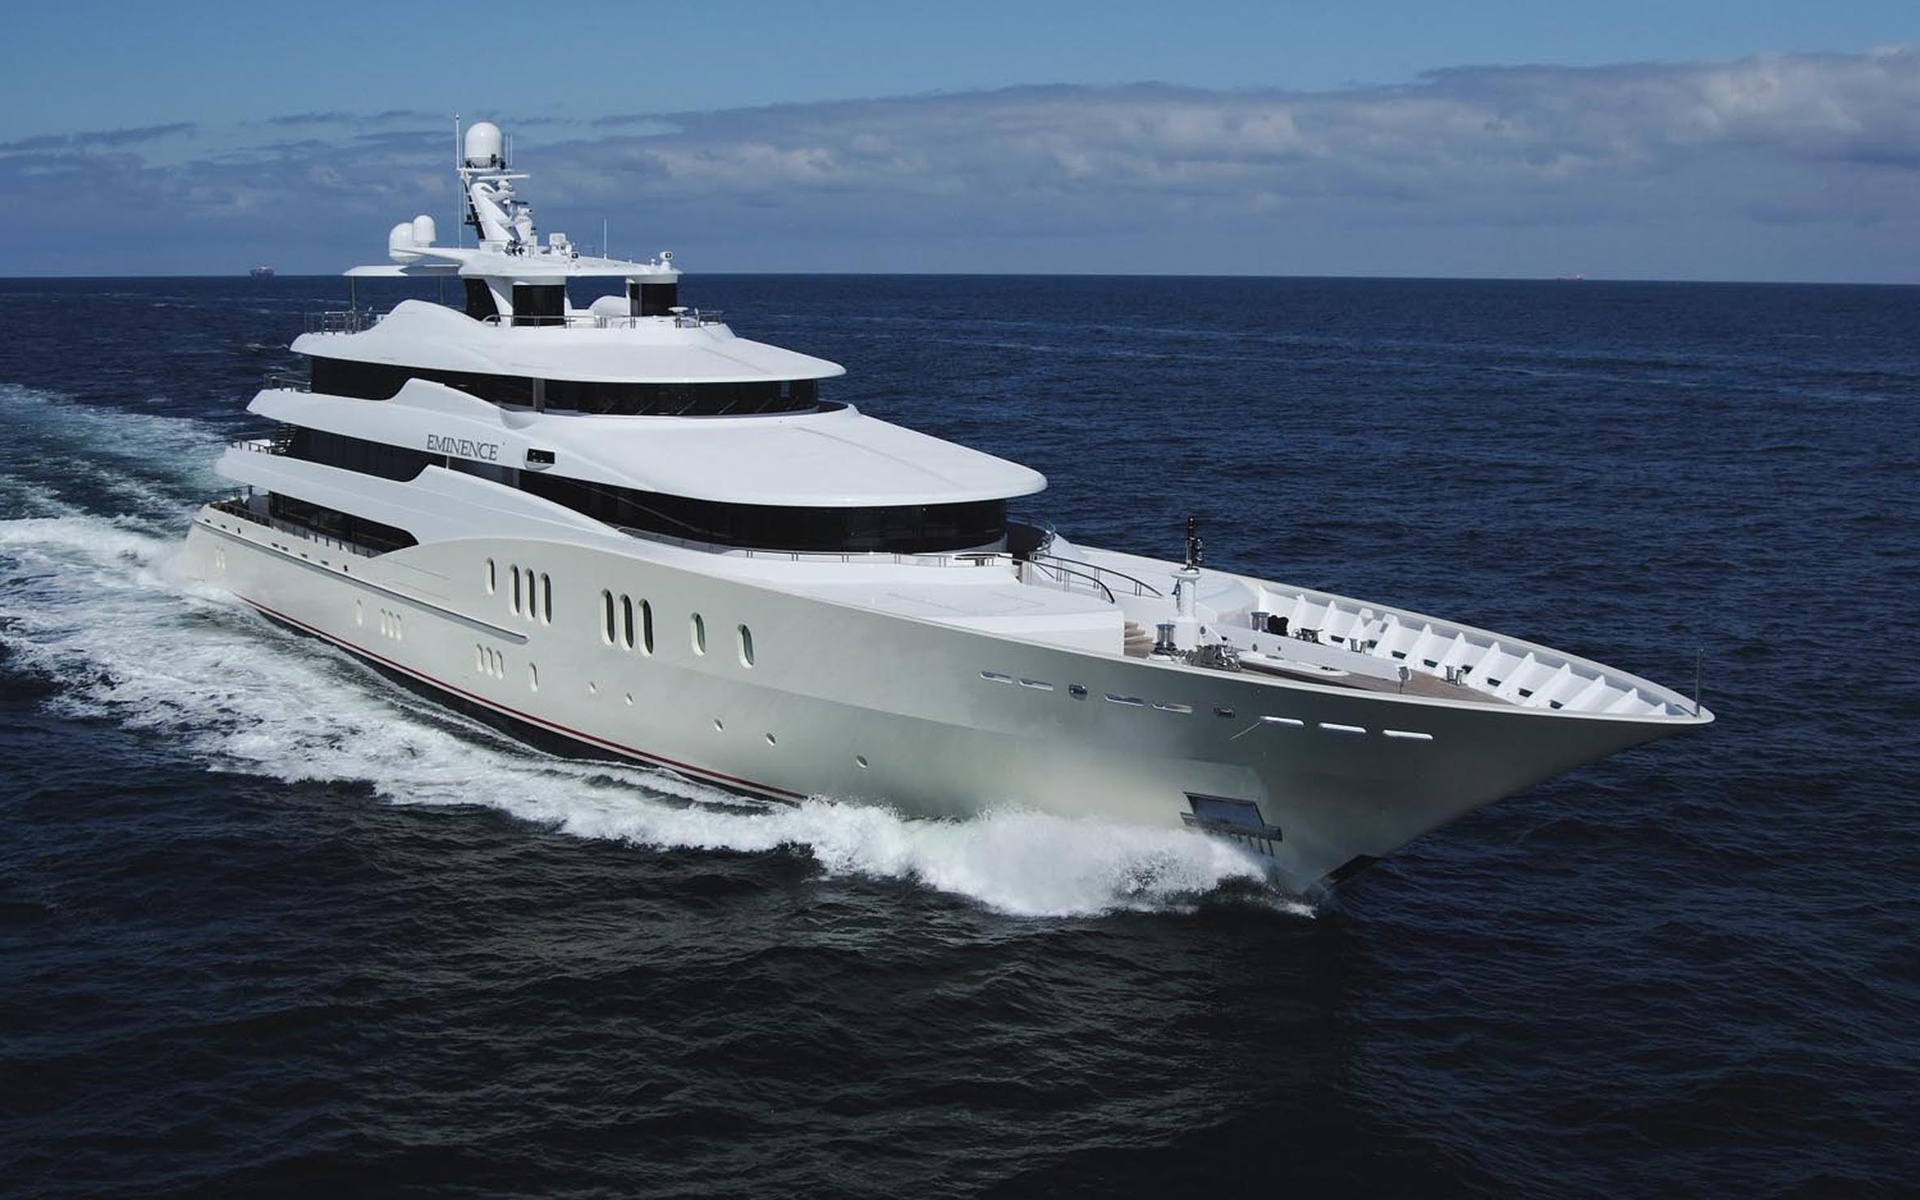 yacht wallpapers full hd full hd pictures